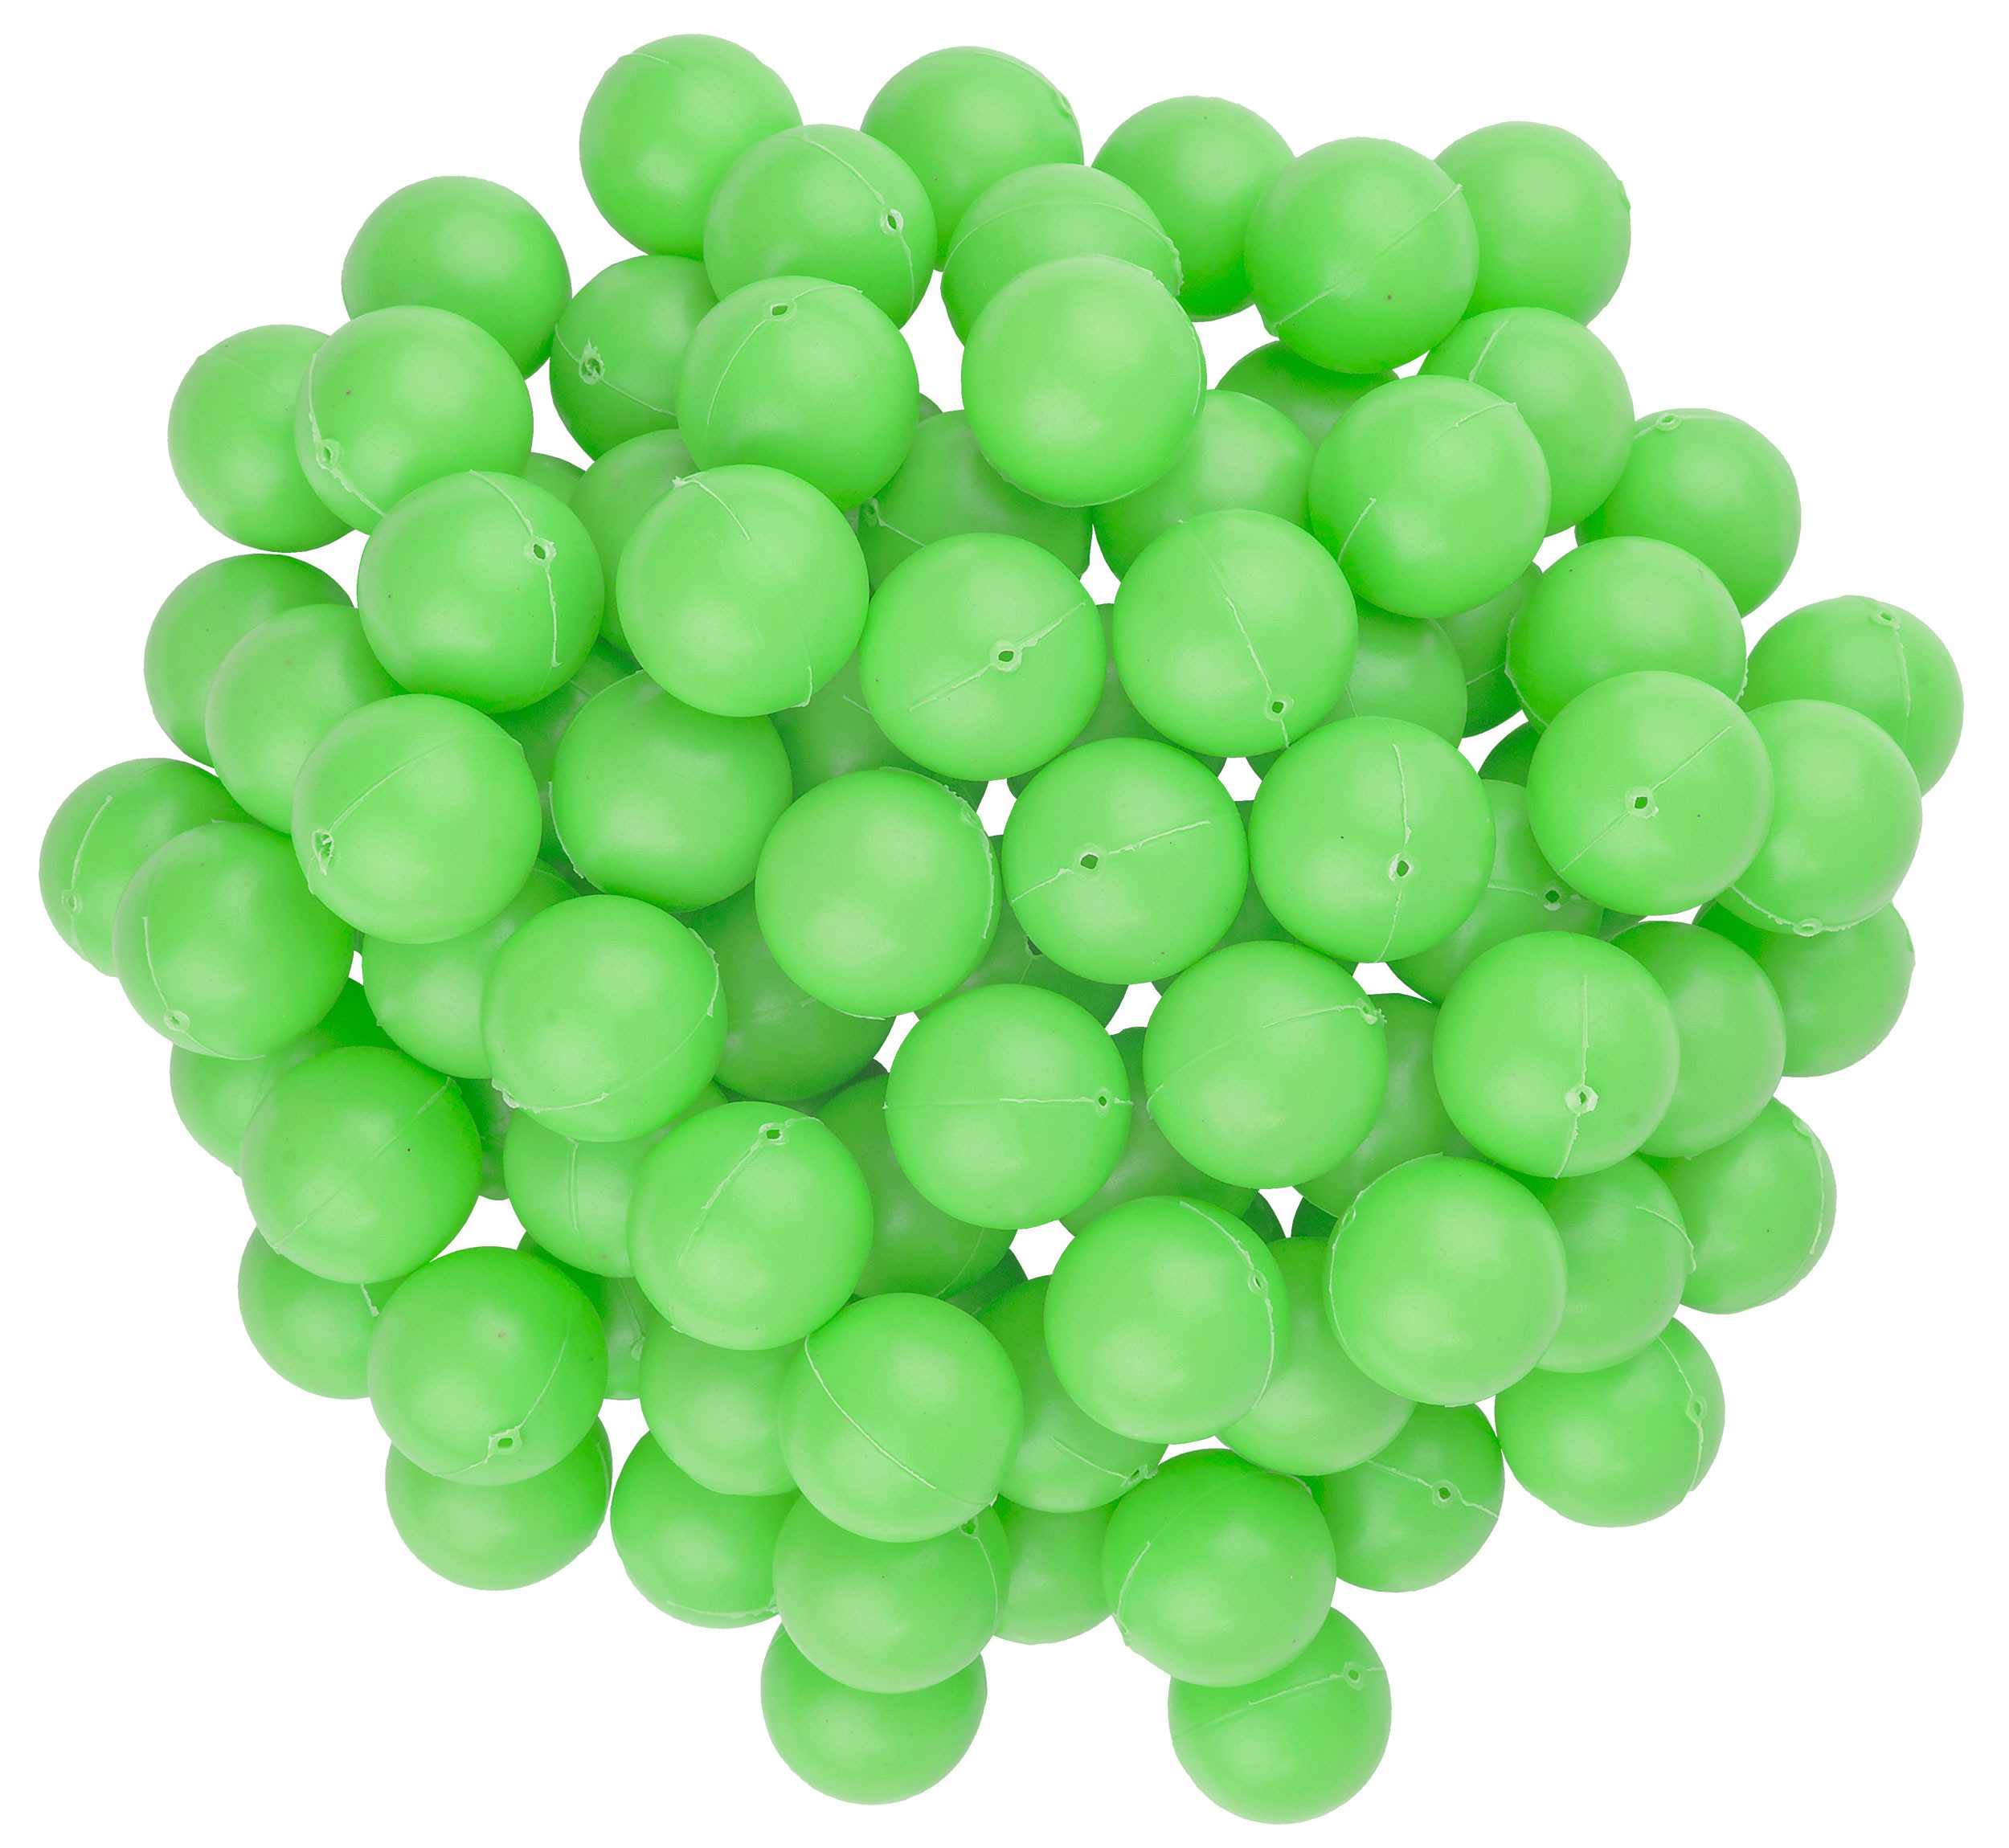 Green Mini Beer Pong Balls